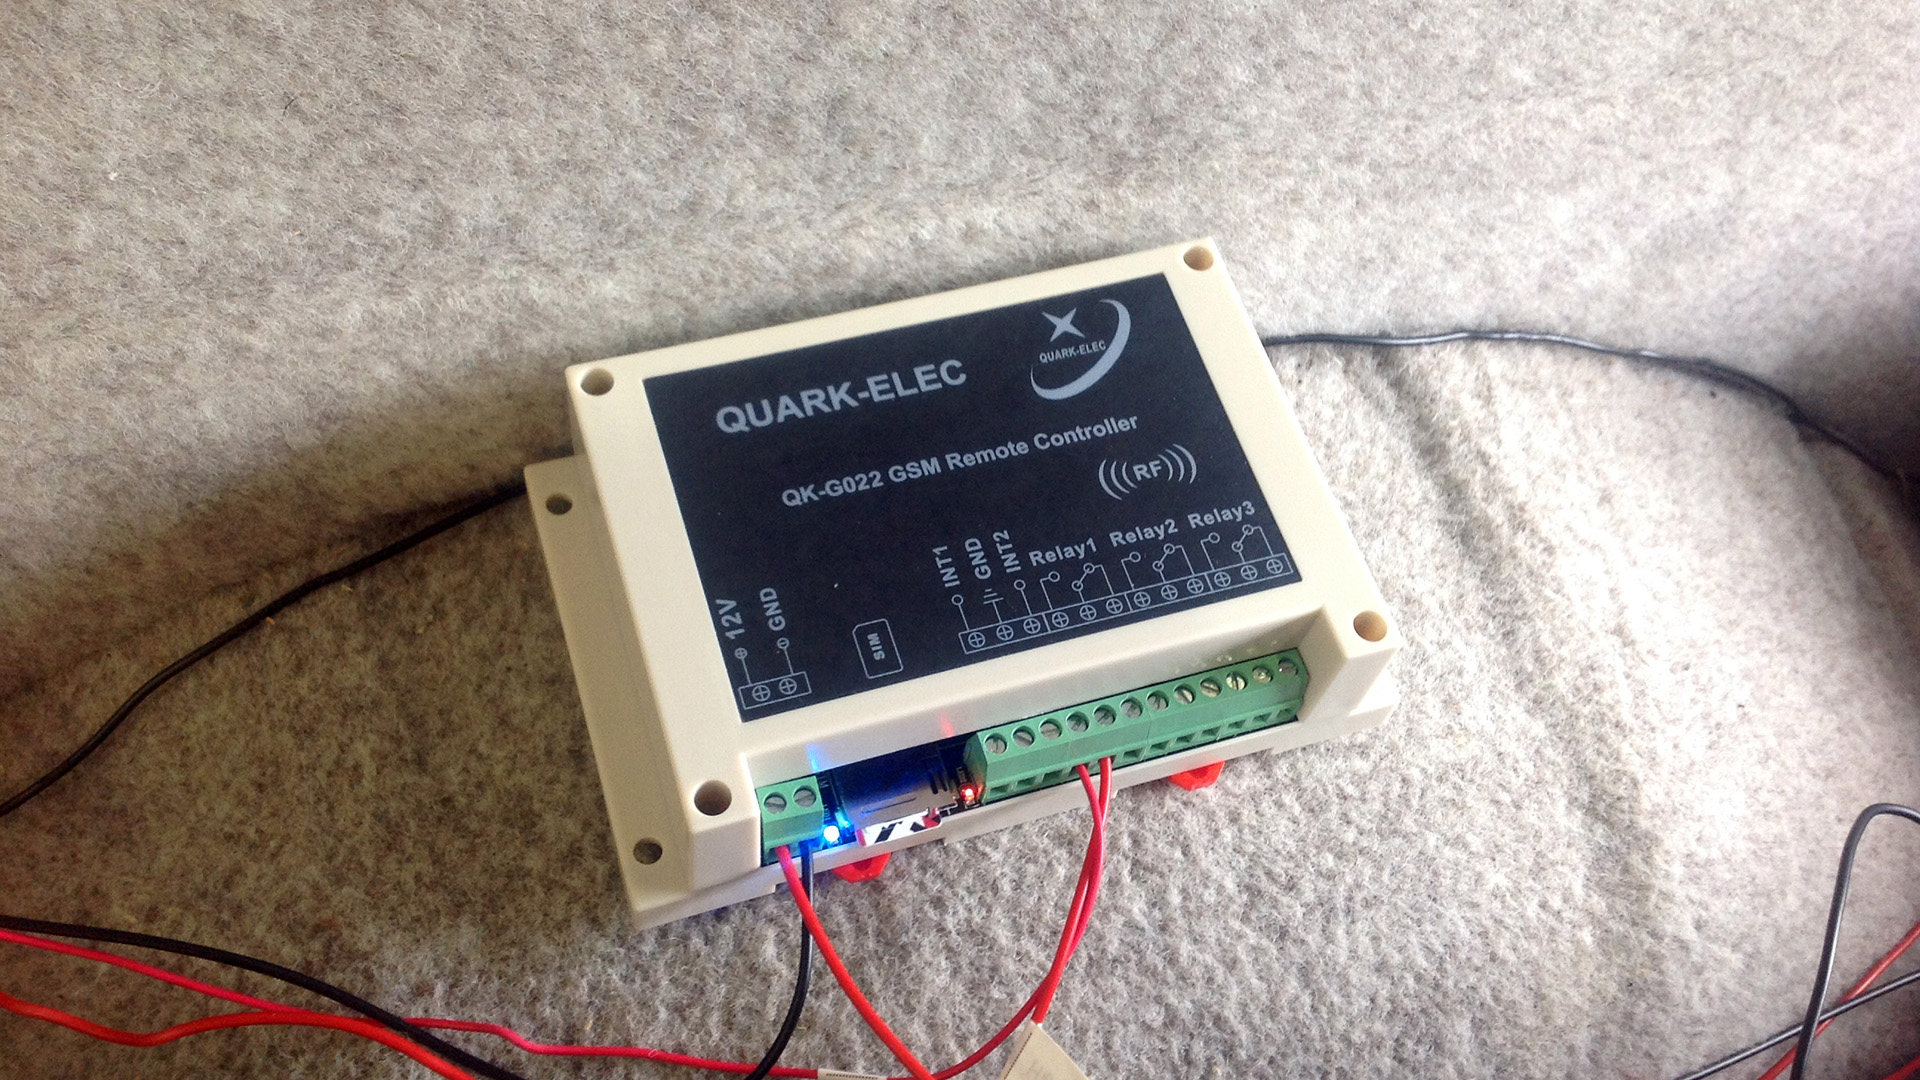 The Quark-elec QK-G022 GSM Remote Controller